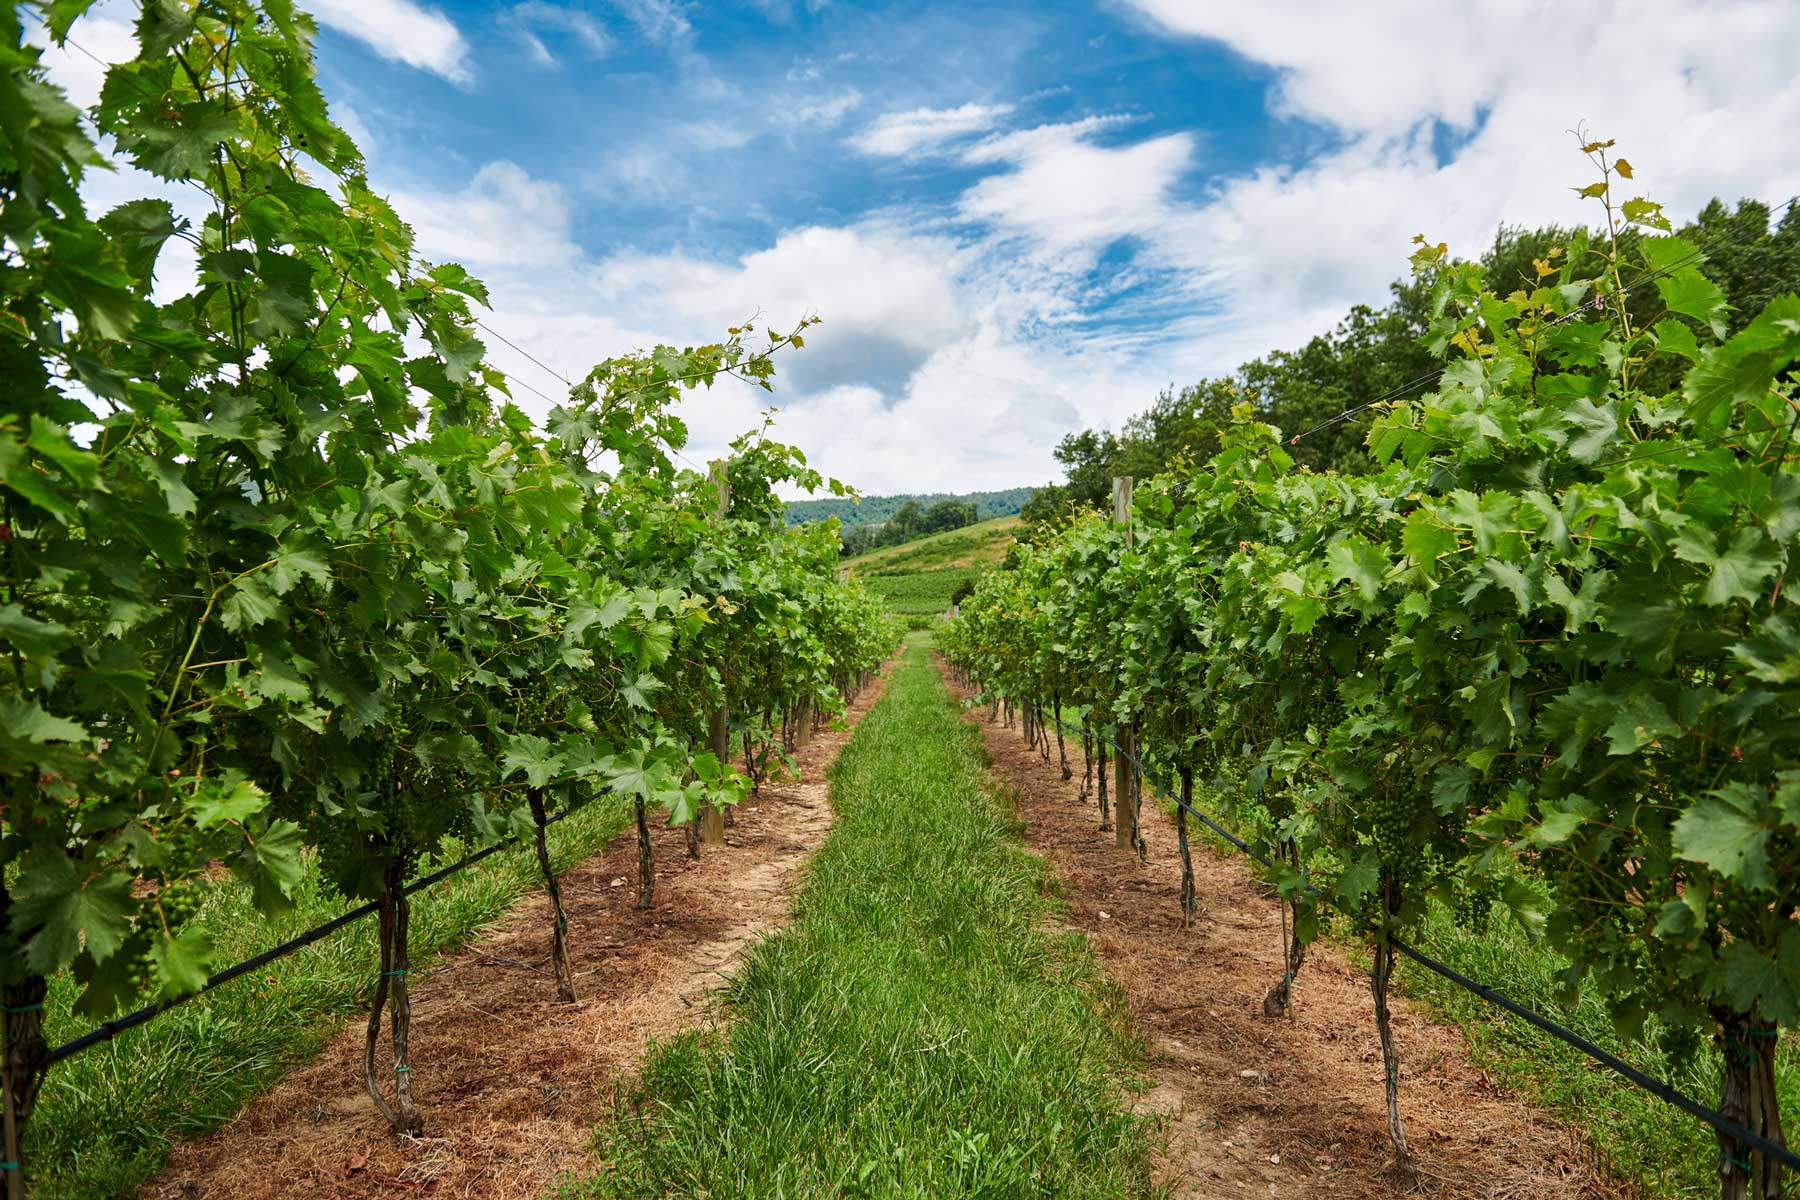 Grape vines under a blue sky in Charlottesville, Virginia